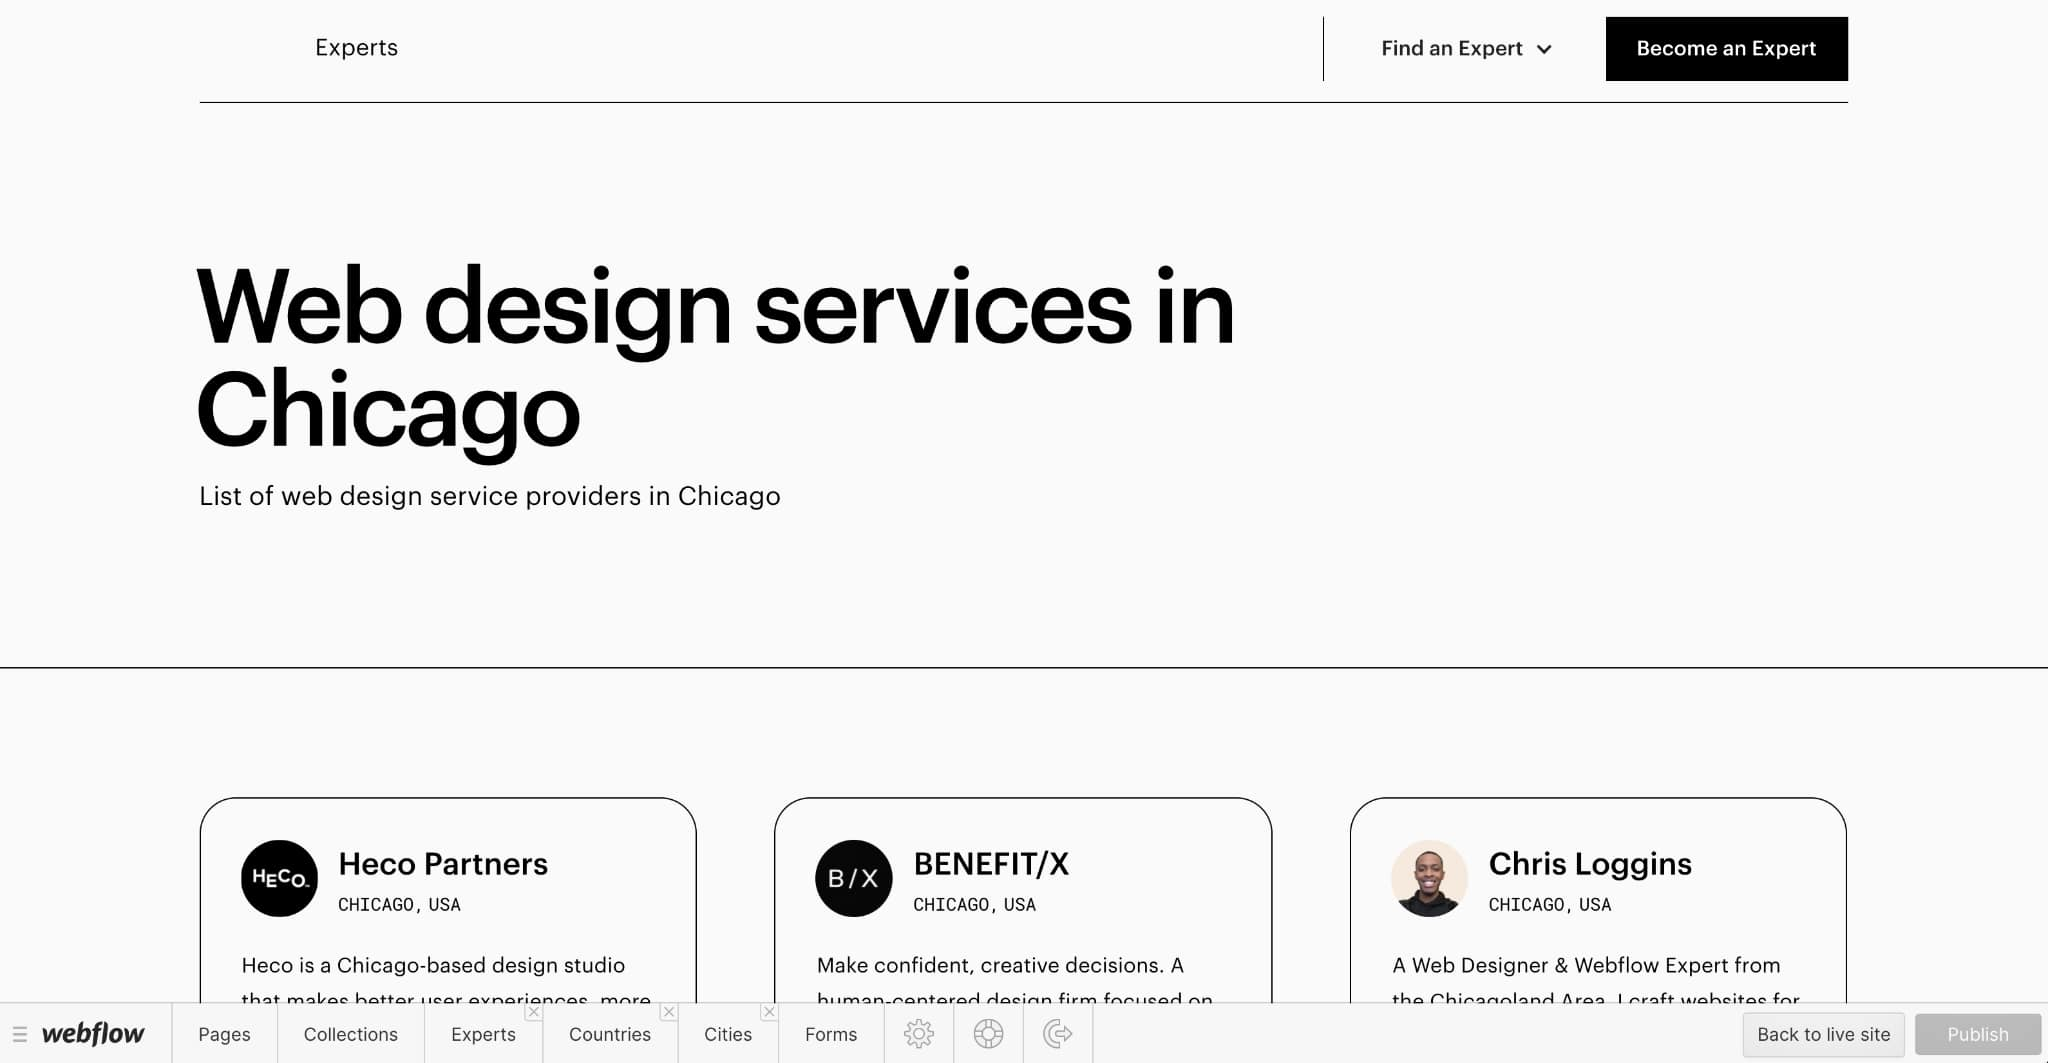 Landing page generated from Cities Collection item.